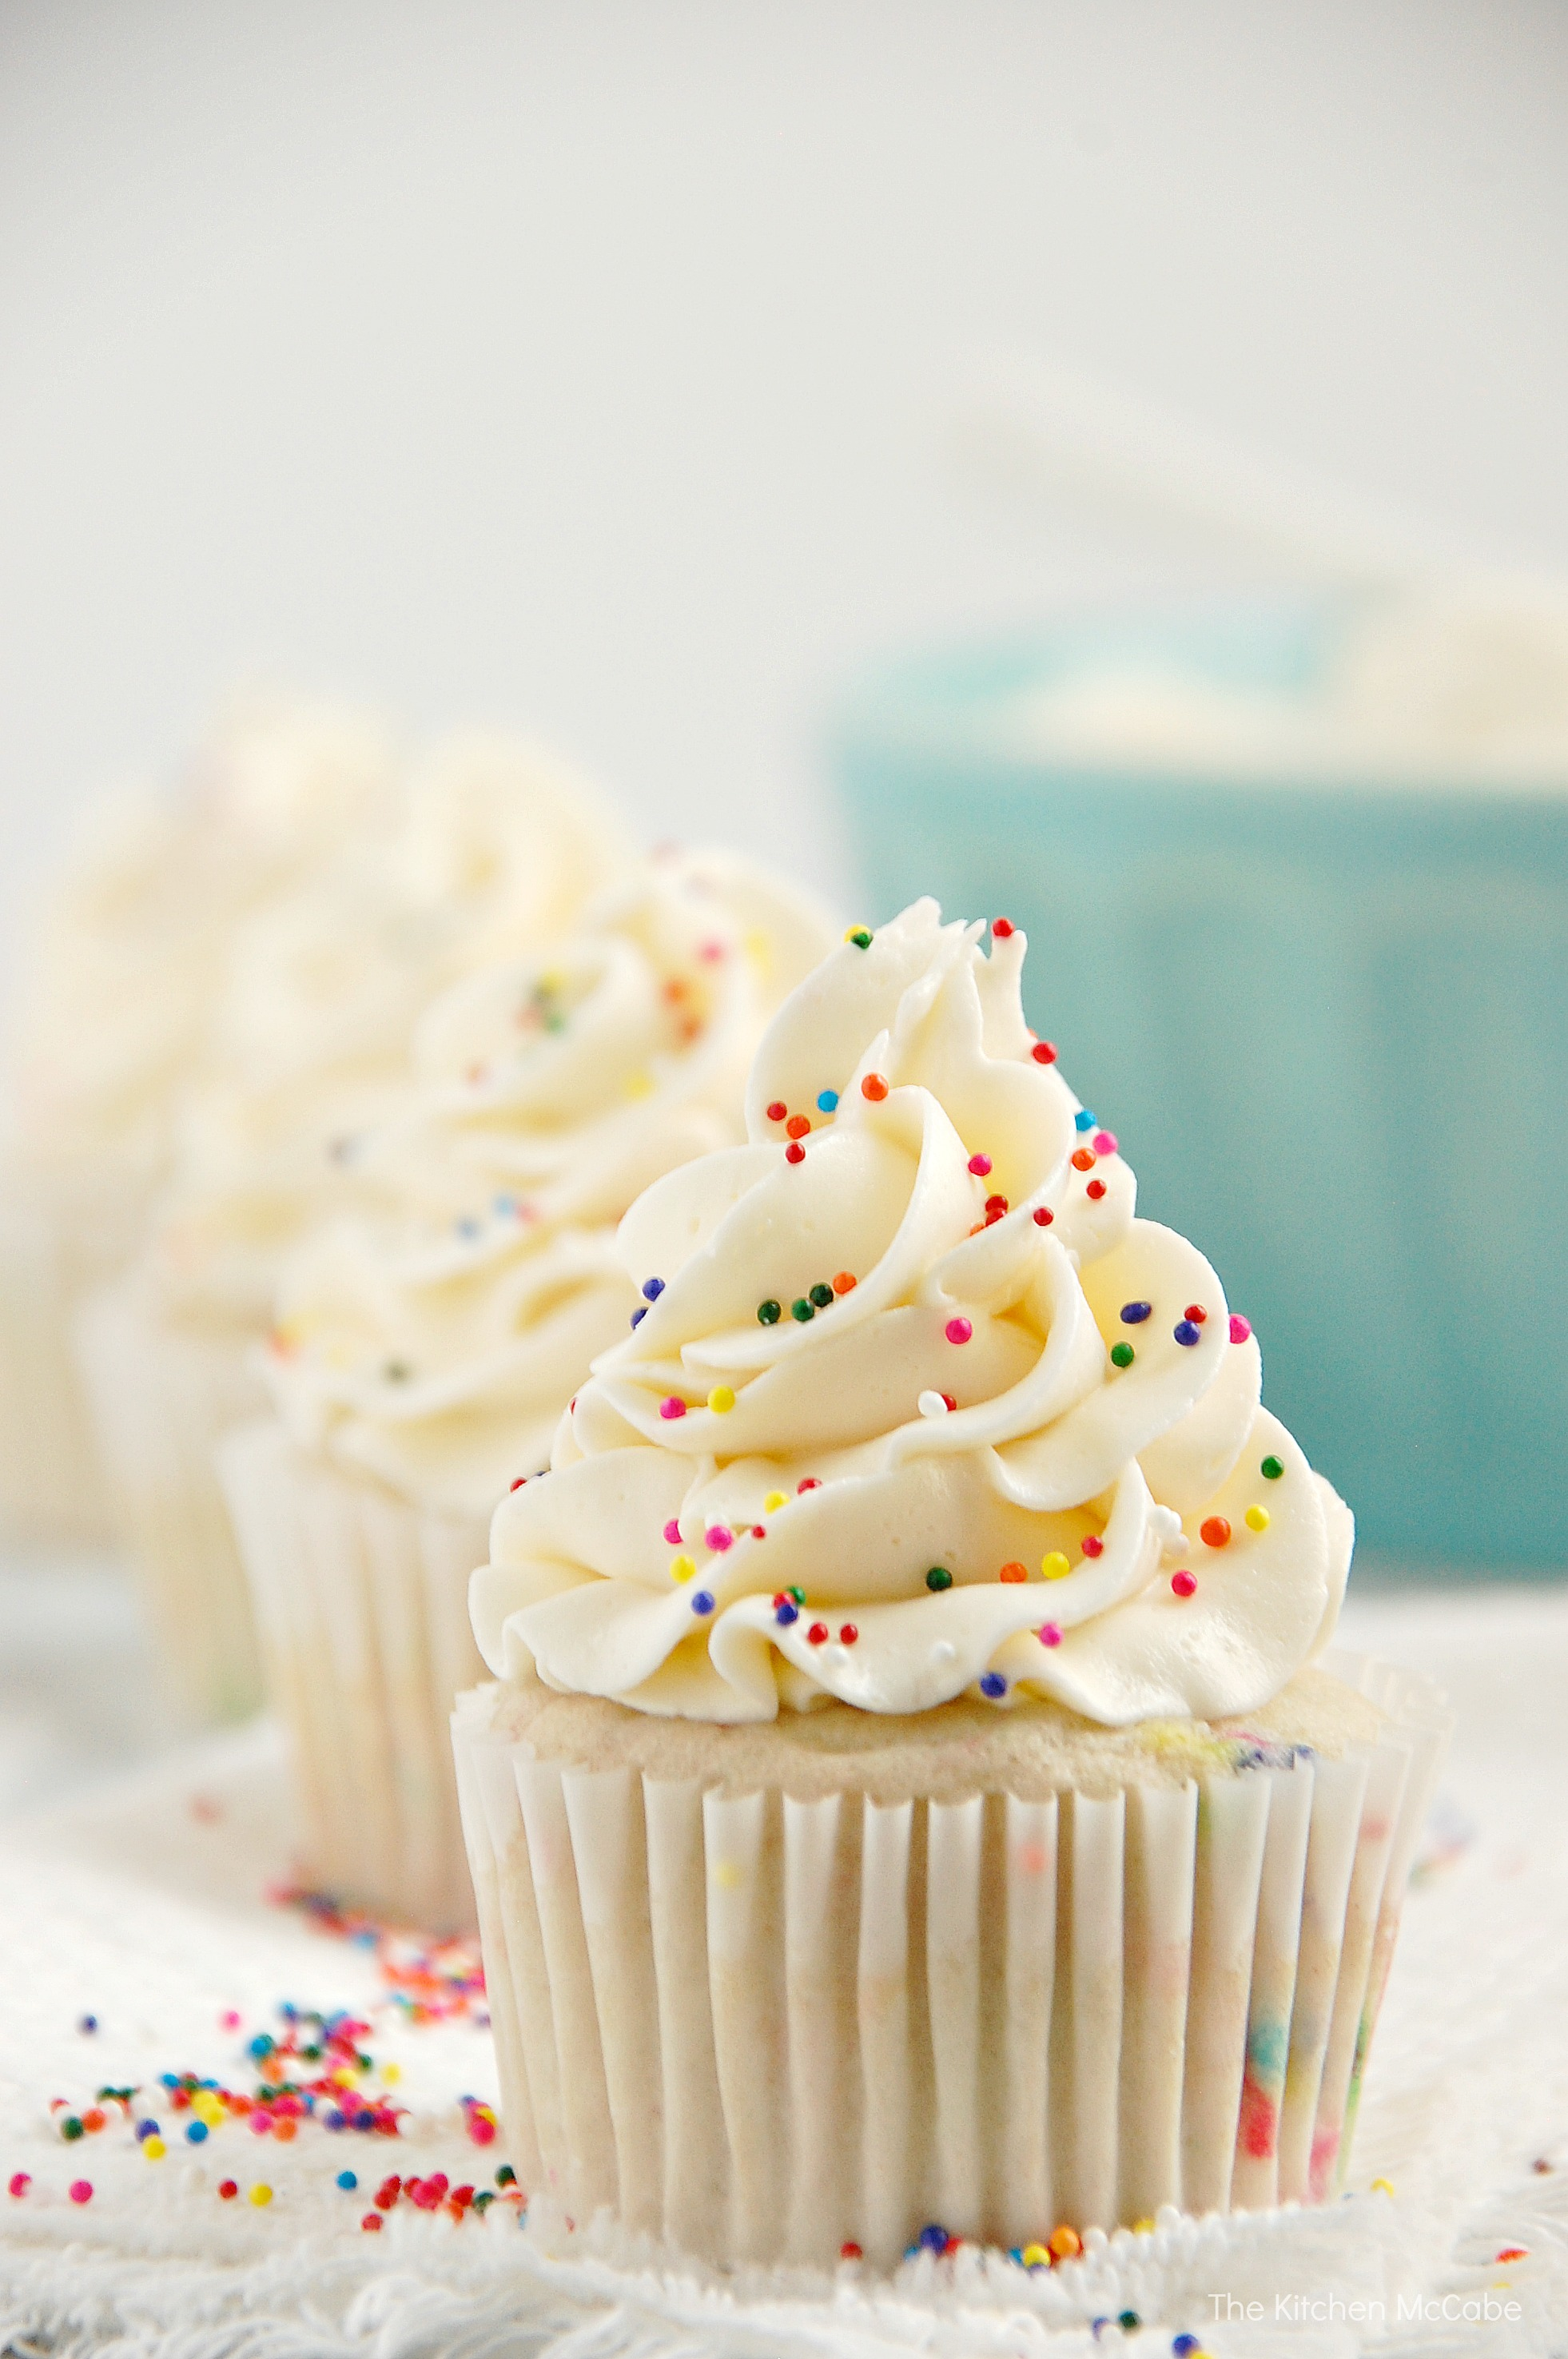 Cupcake Birthday Cakes For Adults